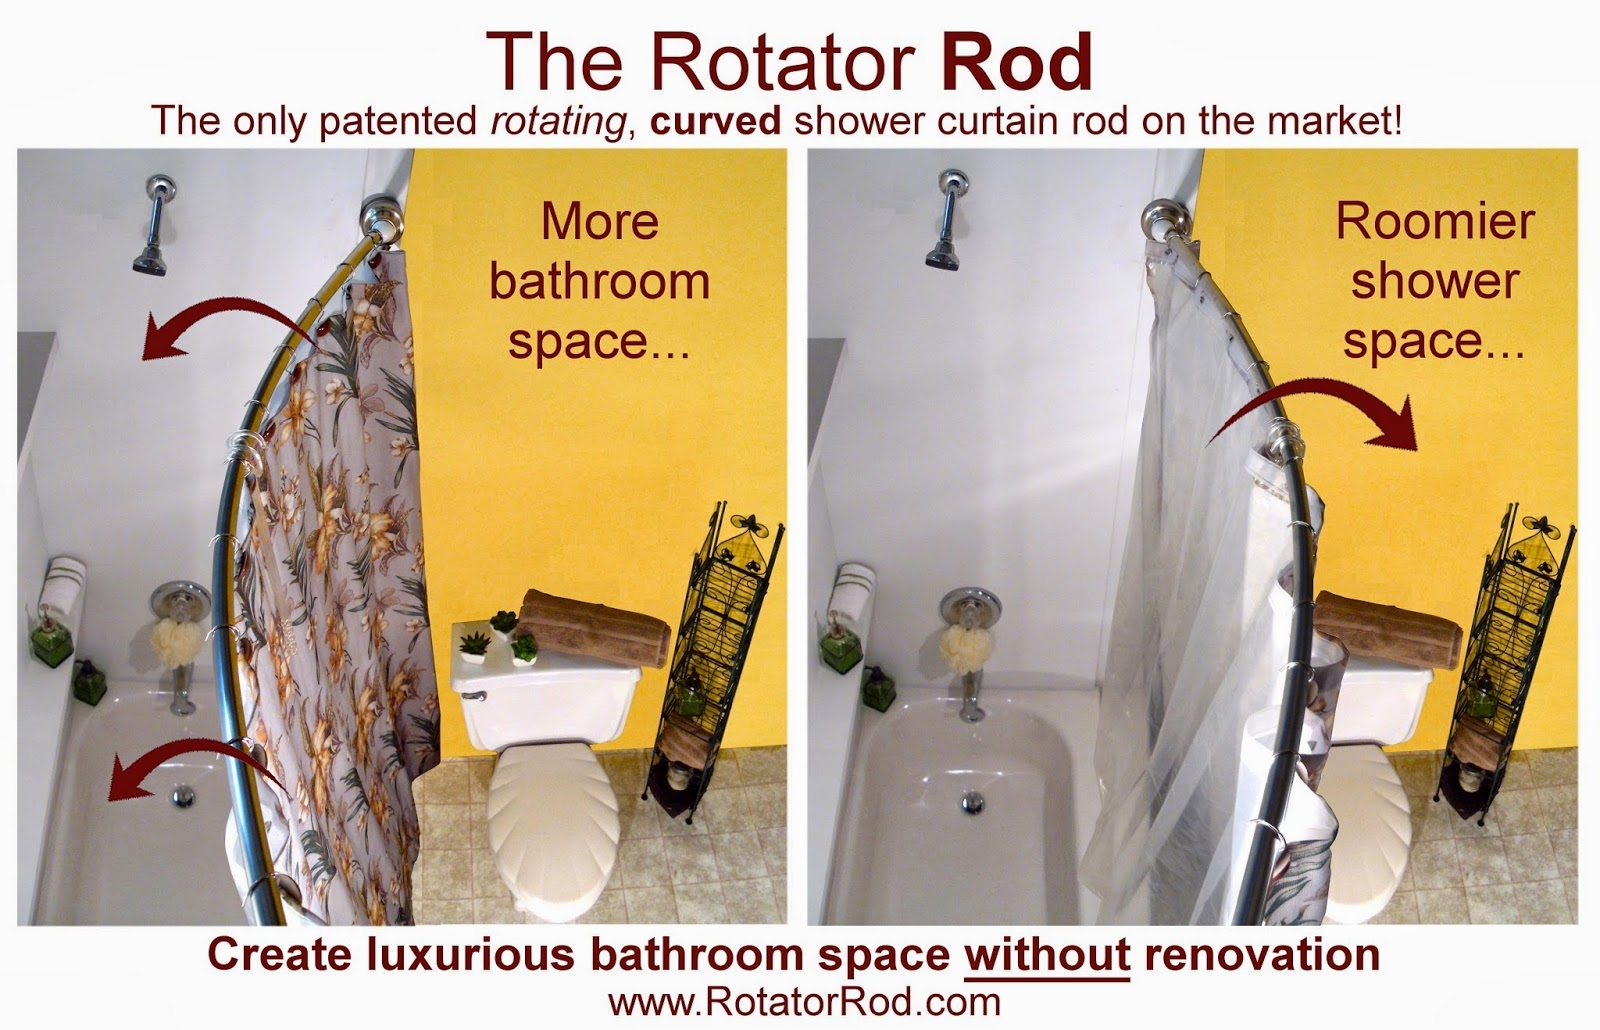 Rotating Shower Curtain Rodfaq About Rotator Rod The Curved That Flips